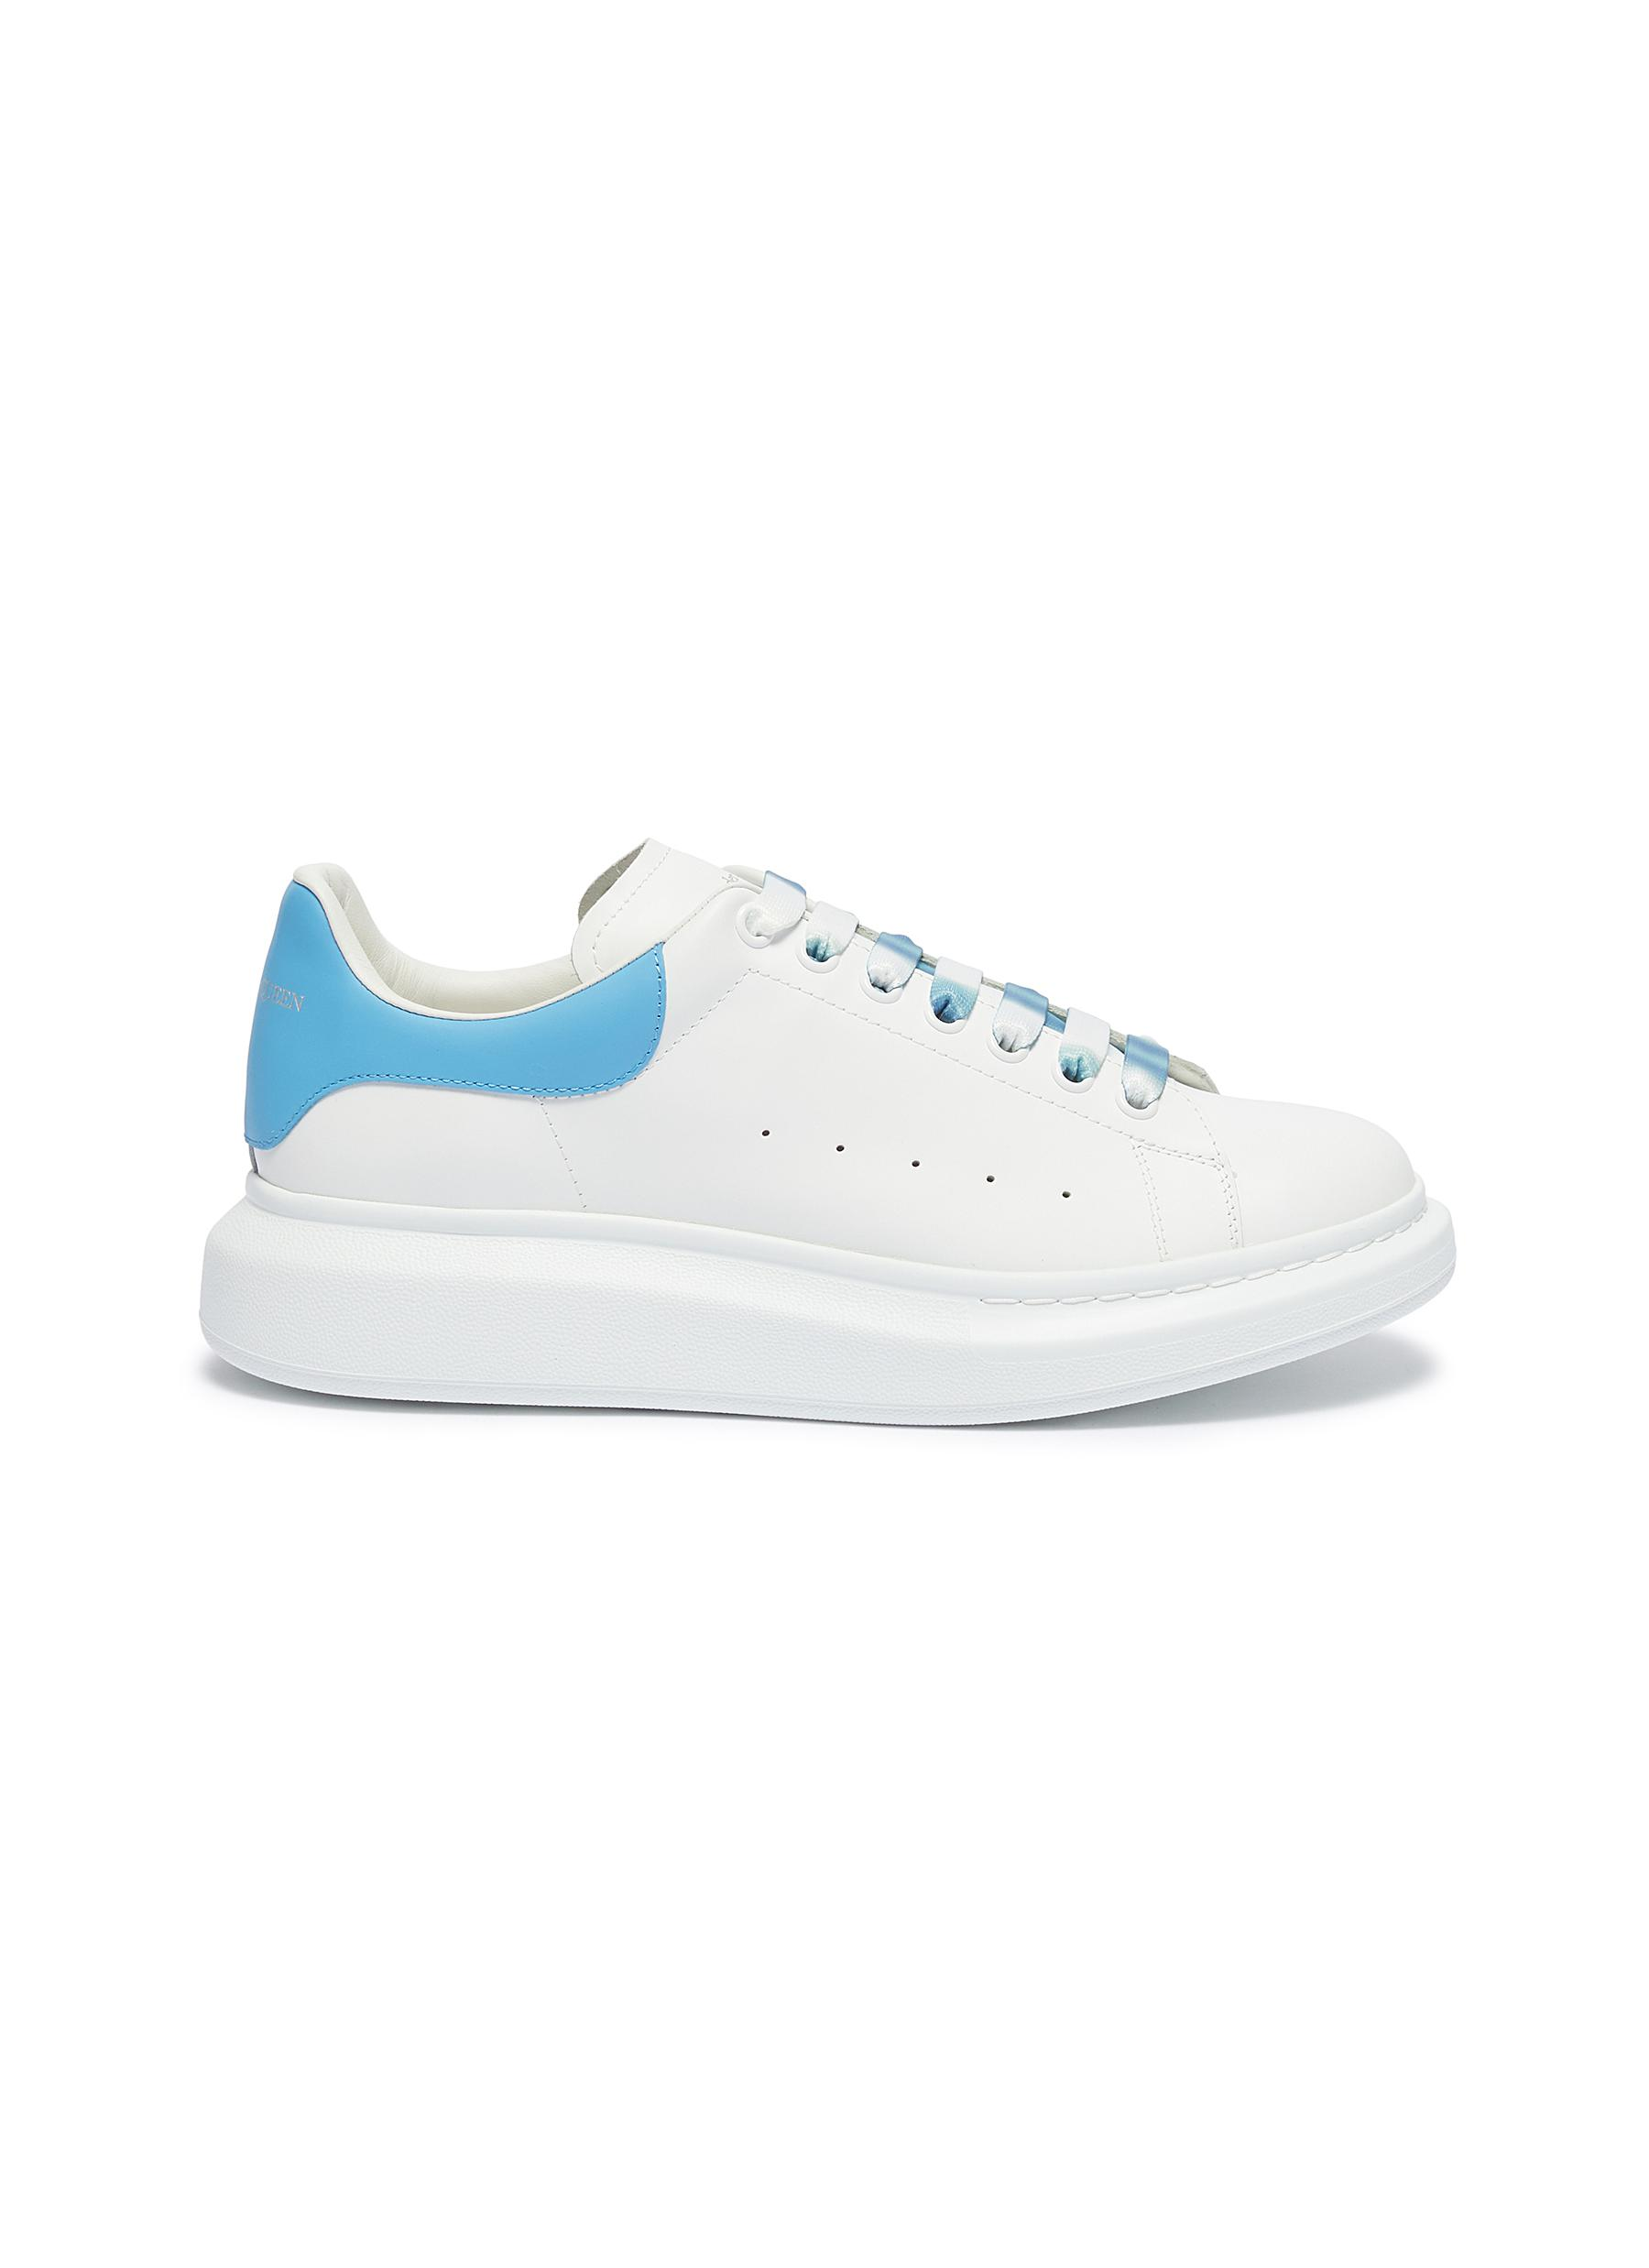 Alexander Mcqueen Sneakers 'Oversized Sneaker' in leather with dégradé lace